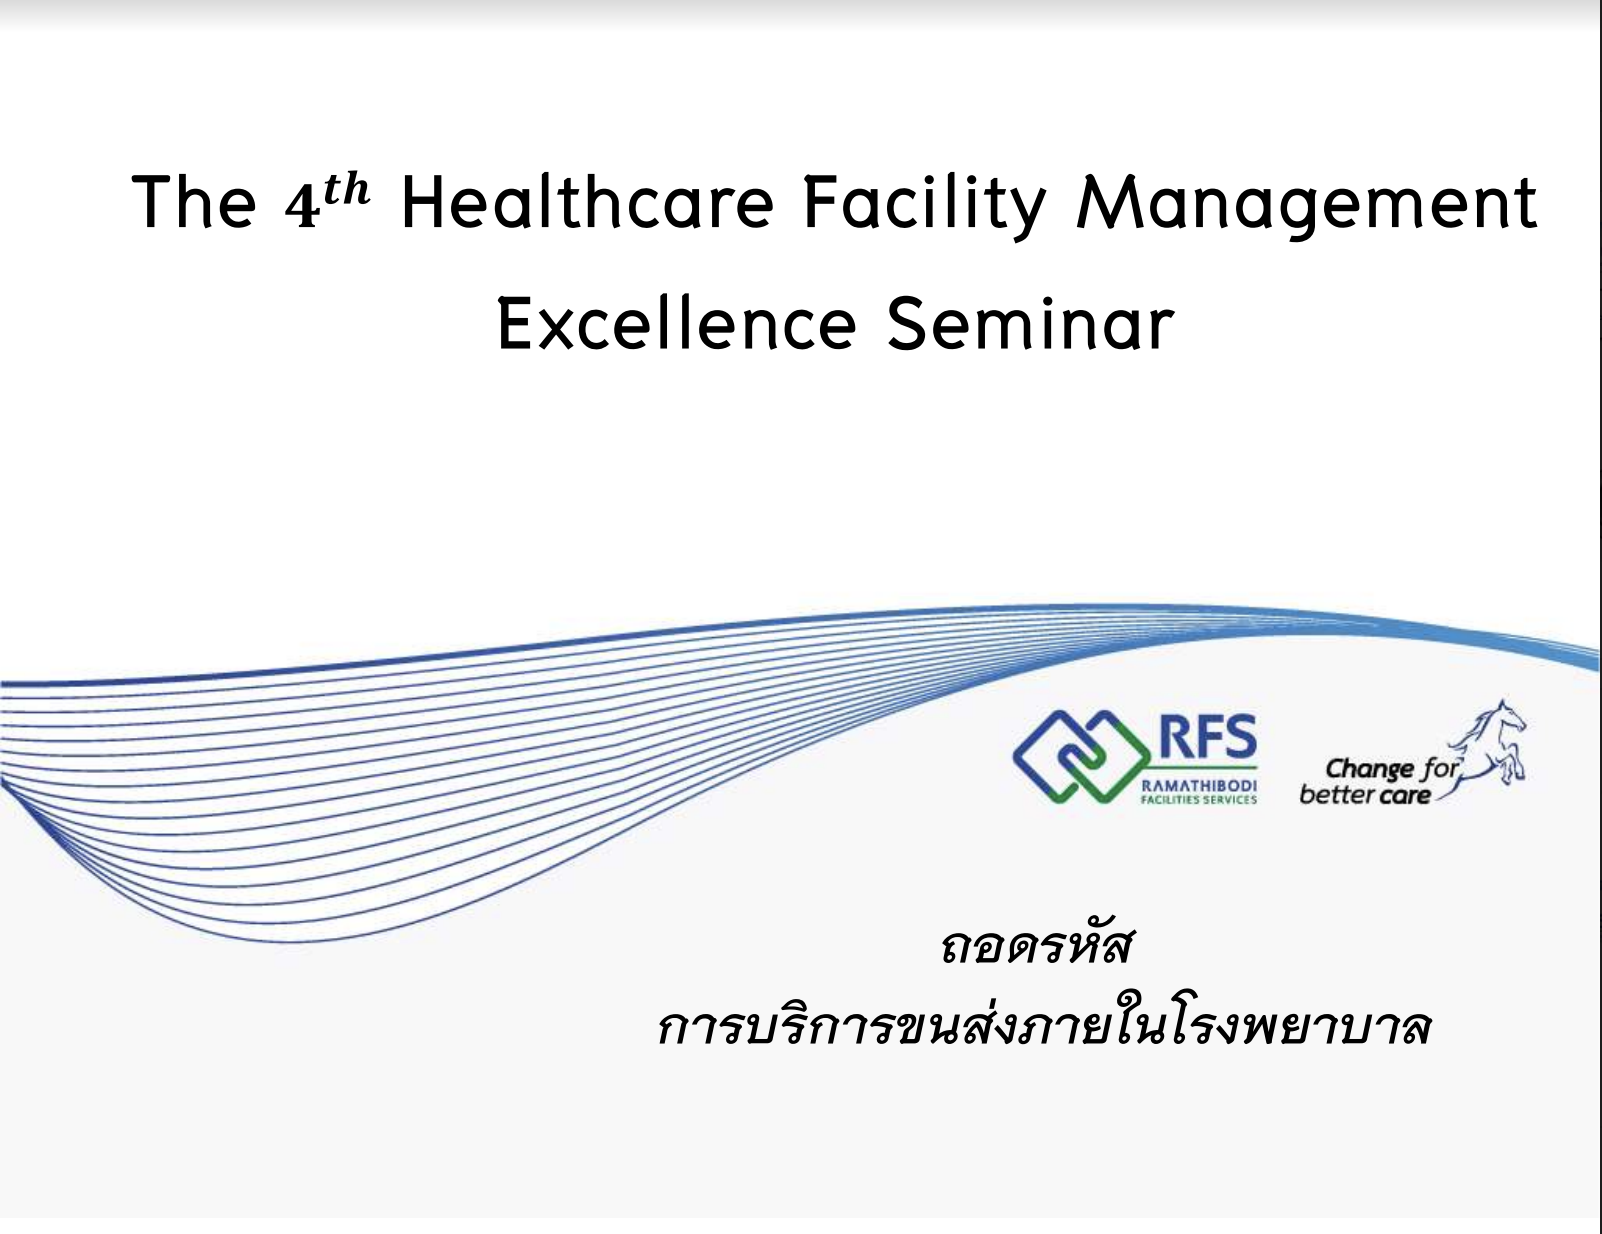 The 4th Healthcare Facility Management Excellence Seminar